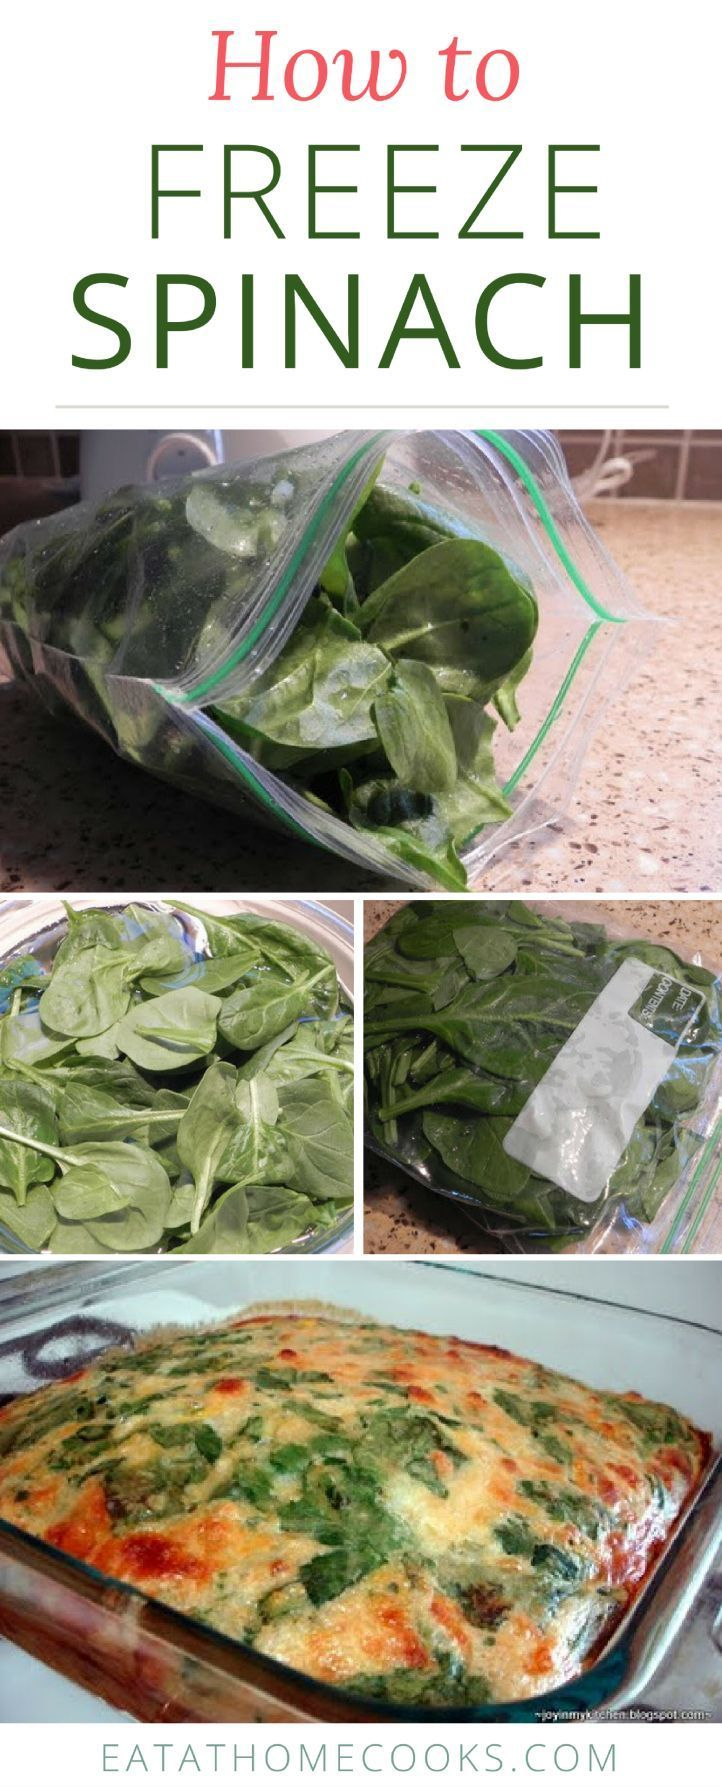 Time is a premium in my kitchen, so I wanted an easy, low-time investment way to preserve our spinach. We do so in three easy steps.